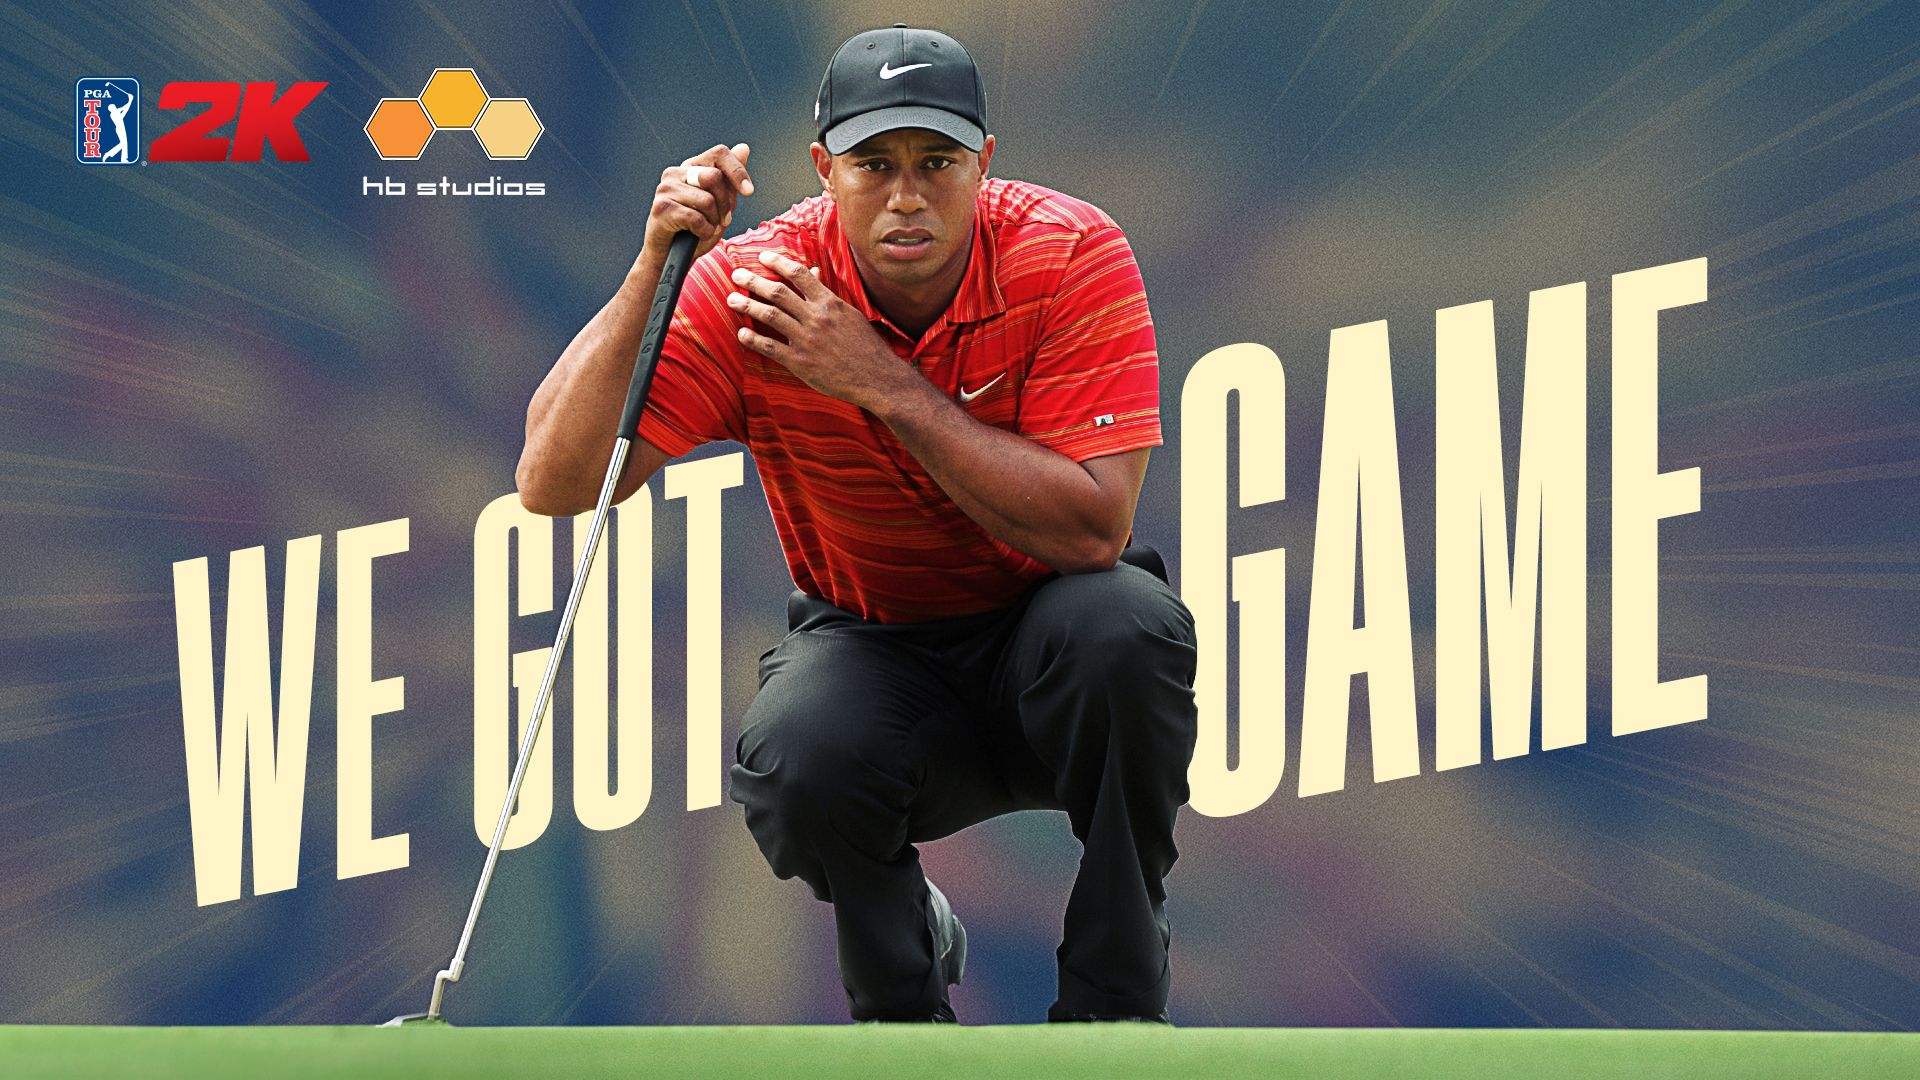 Tiger Woods Inks Long-Term Exclusive Deal with 2K